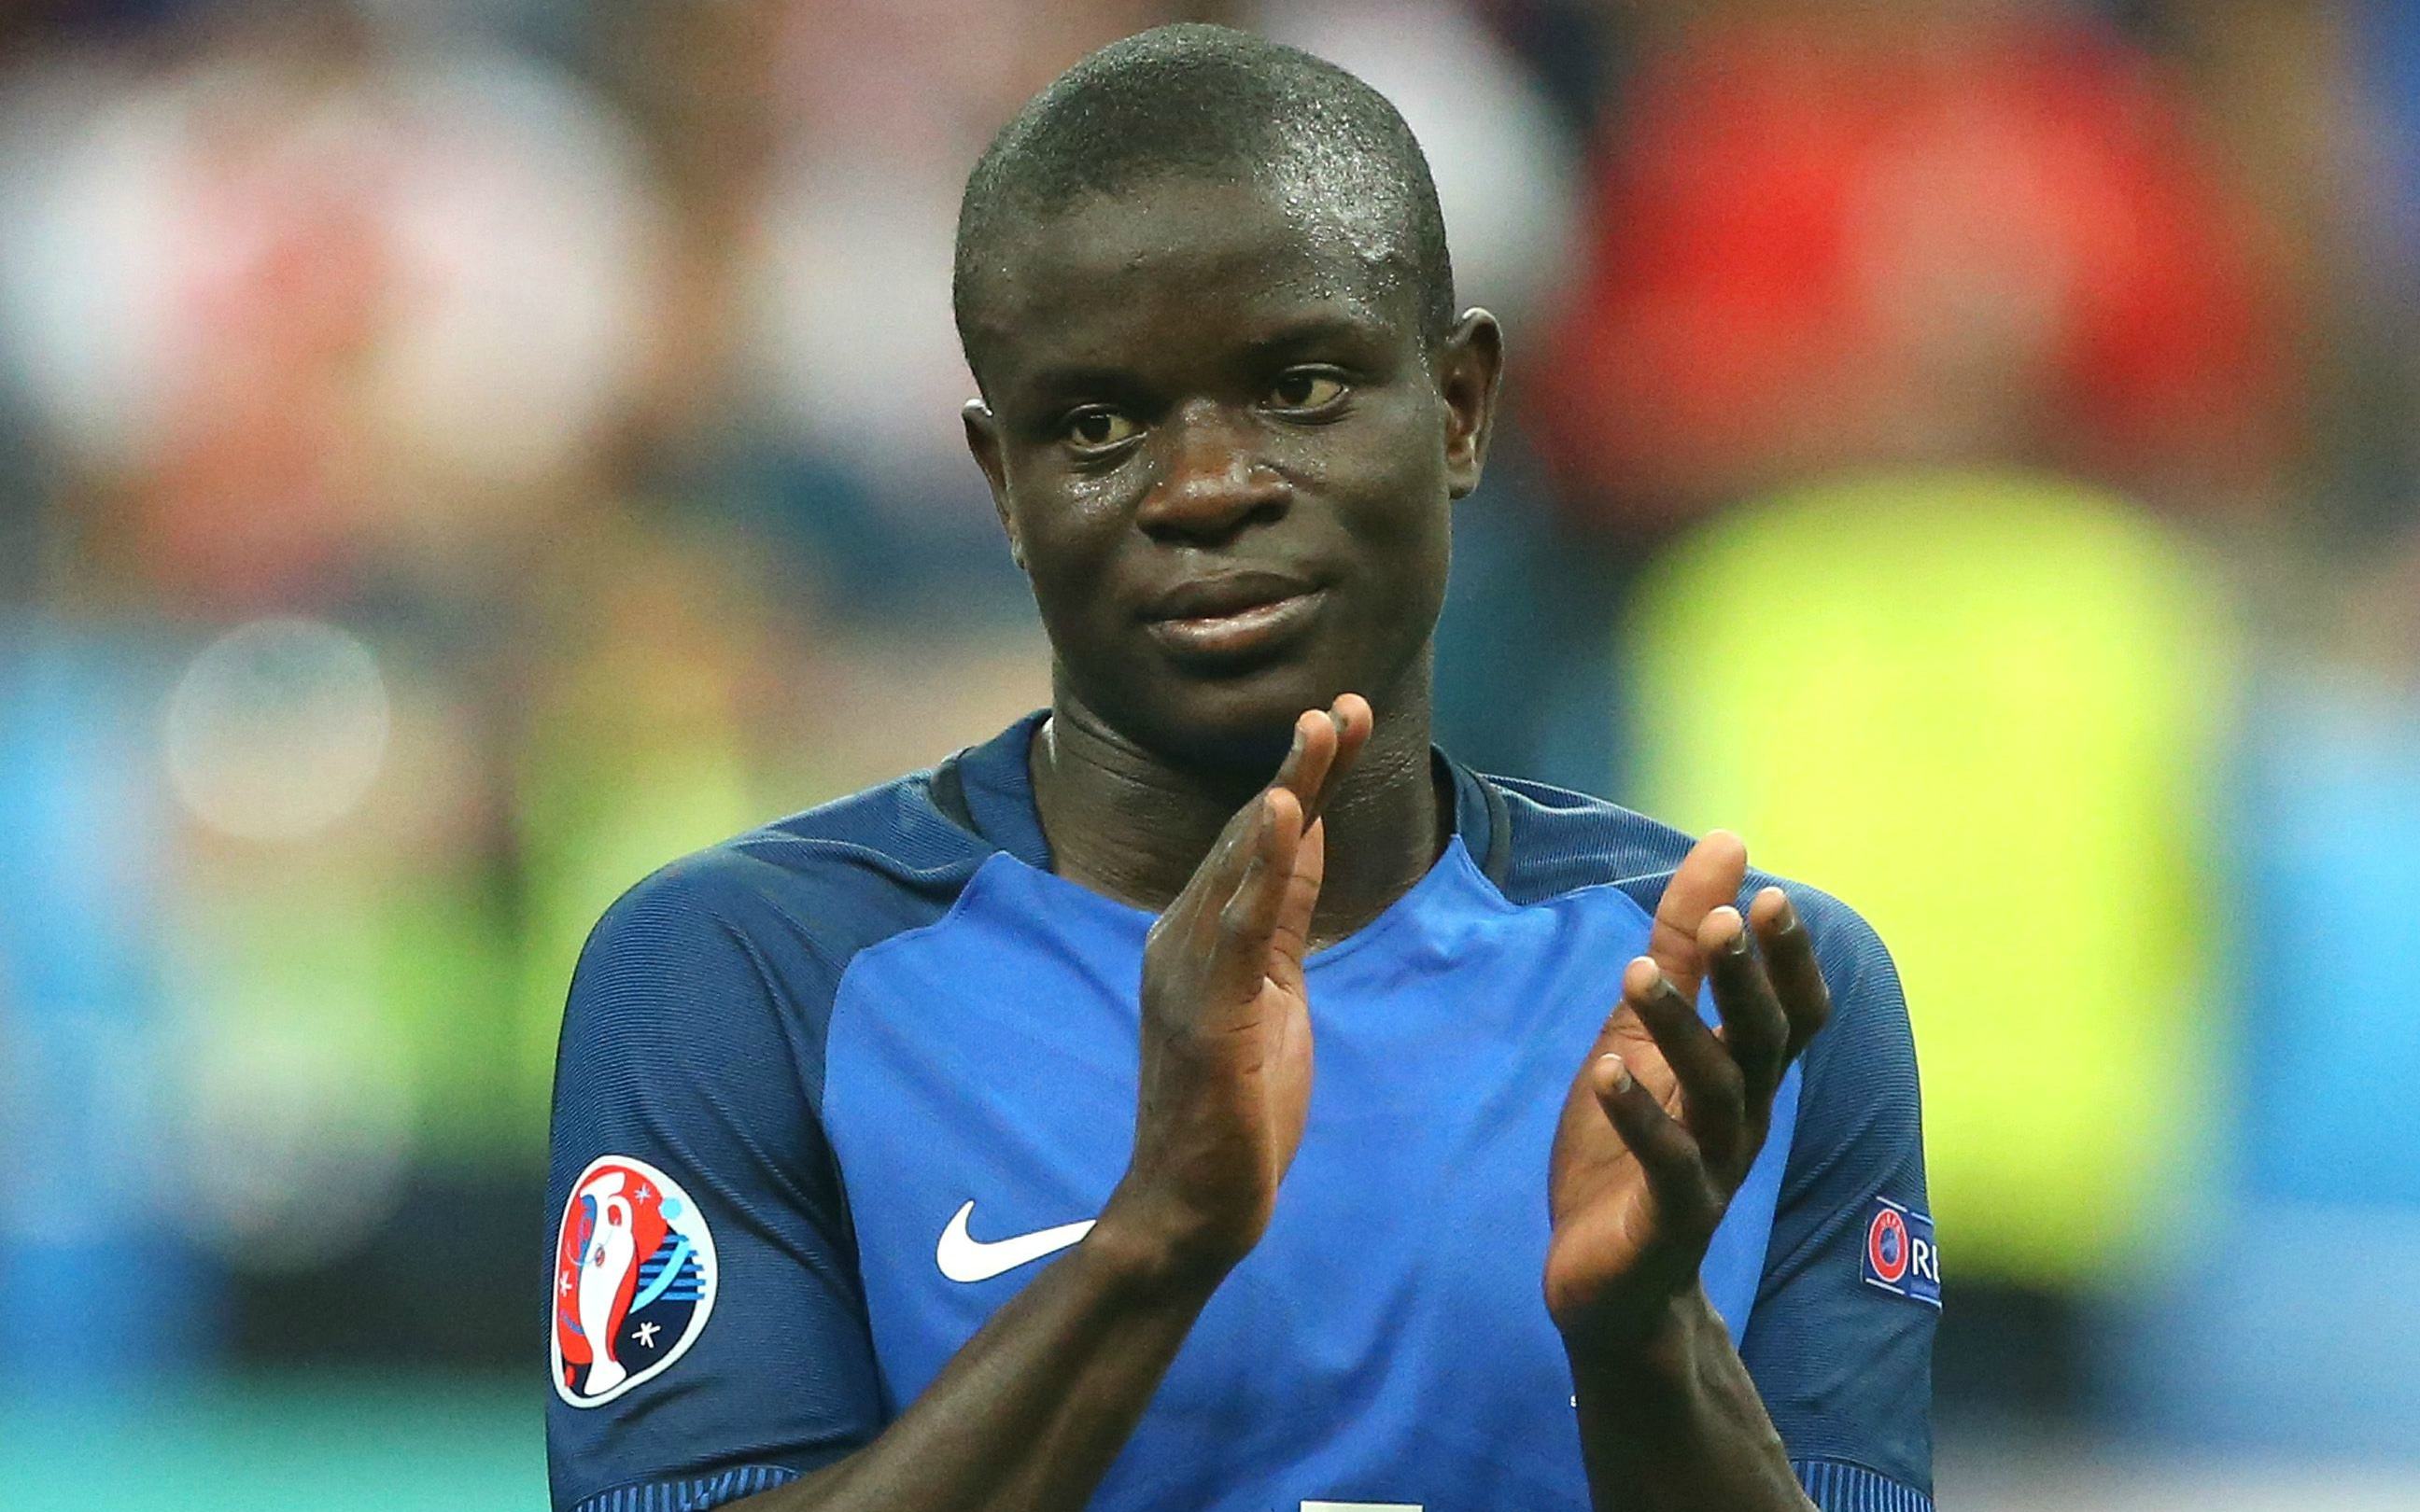 Chelsea manager Antonio Conte hails new signing N'Golo Kante